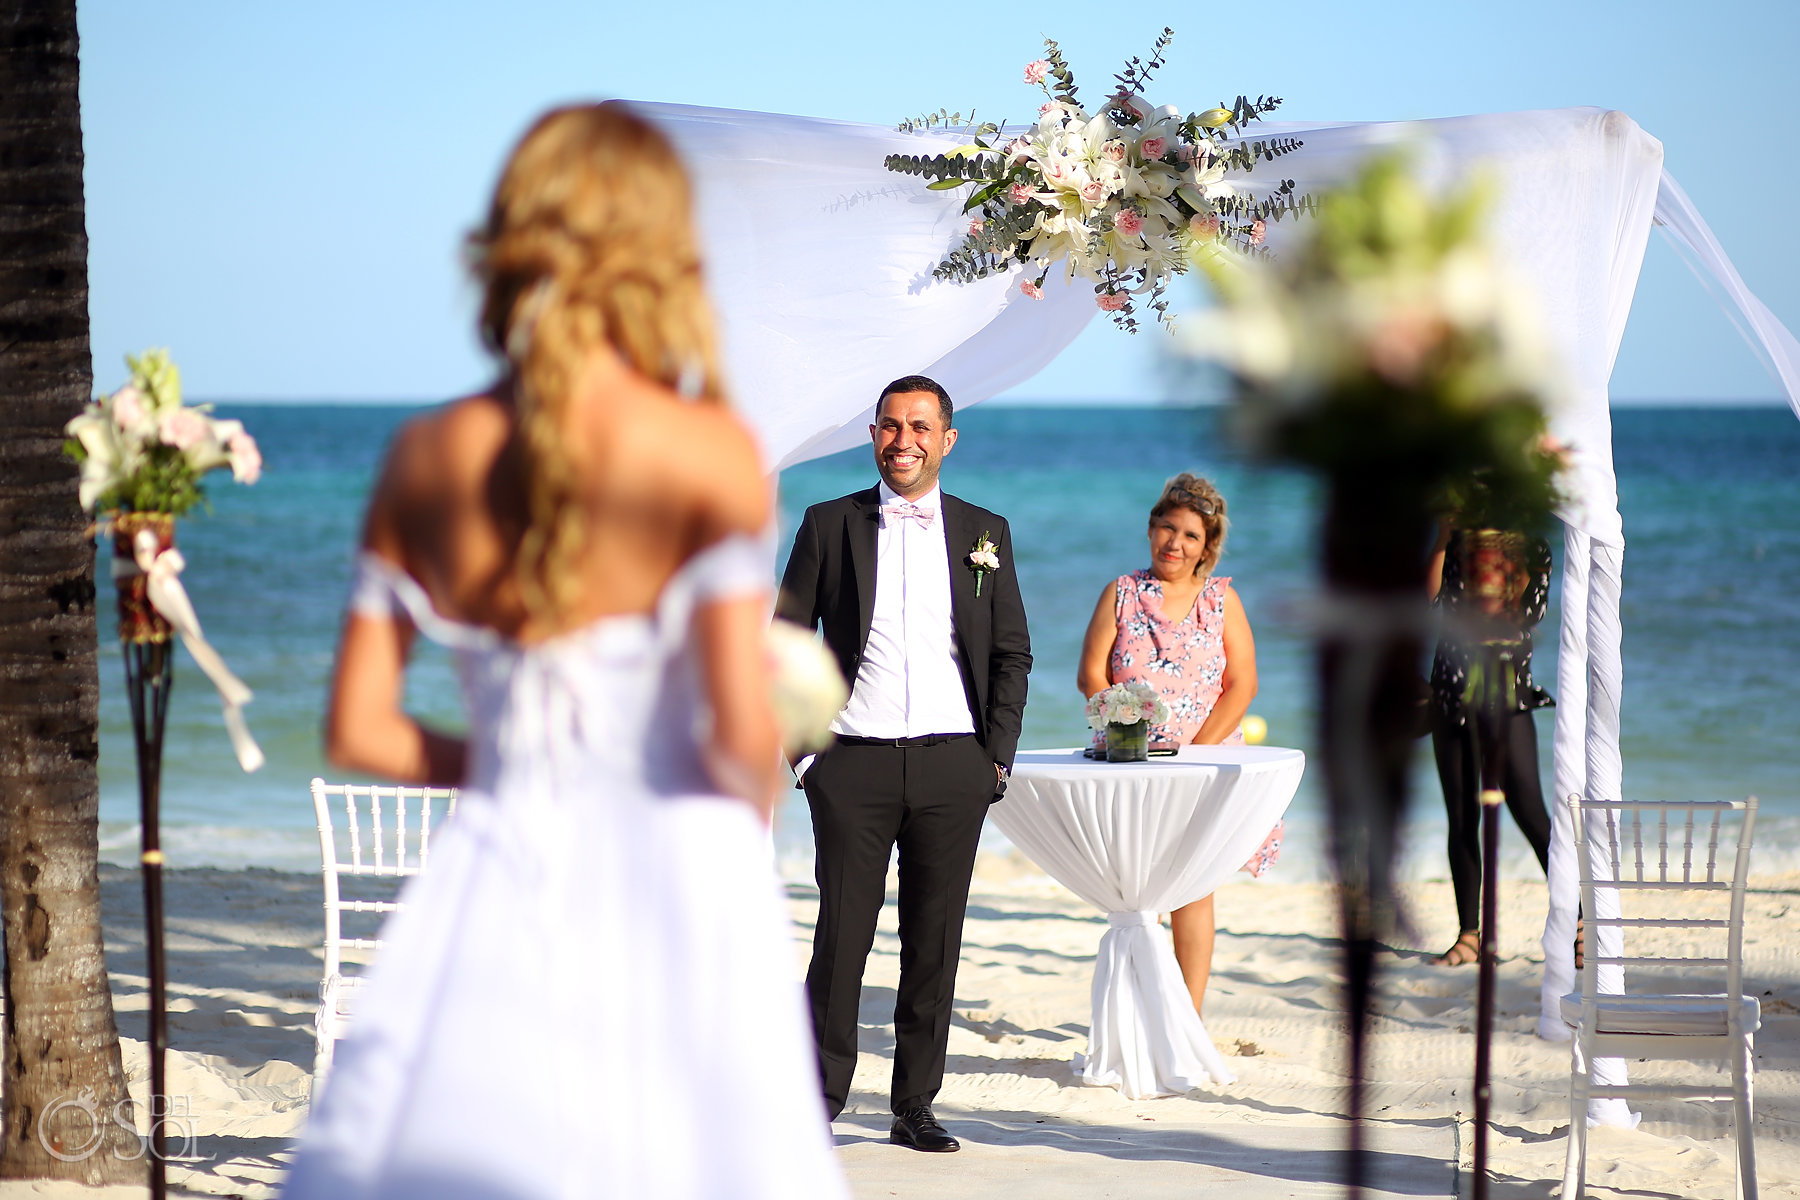 Grooms first look blue water sea ceremony setup best elopement locations Mexico Blue Diamond Luxury Boutique Hotel